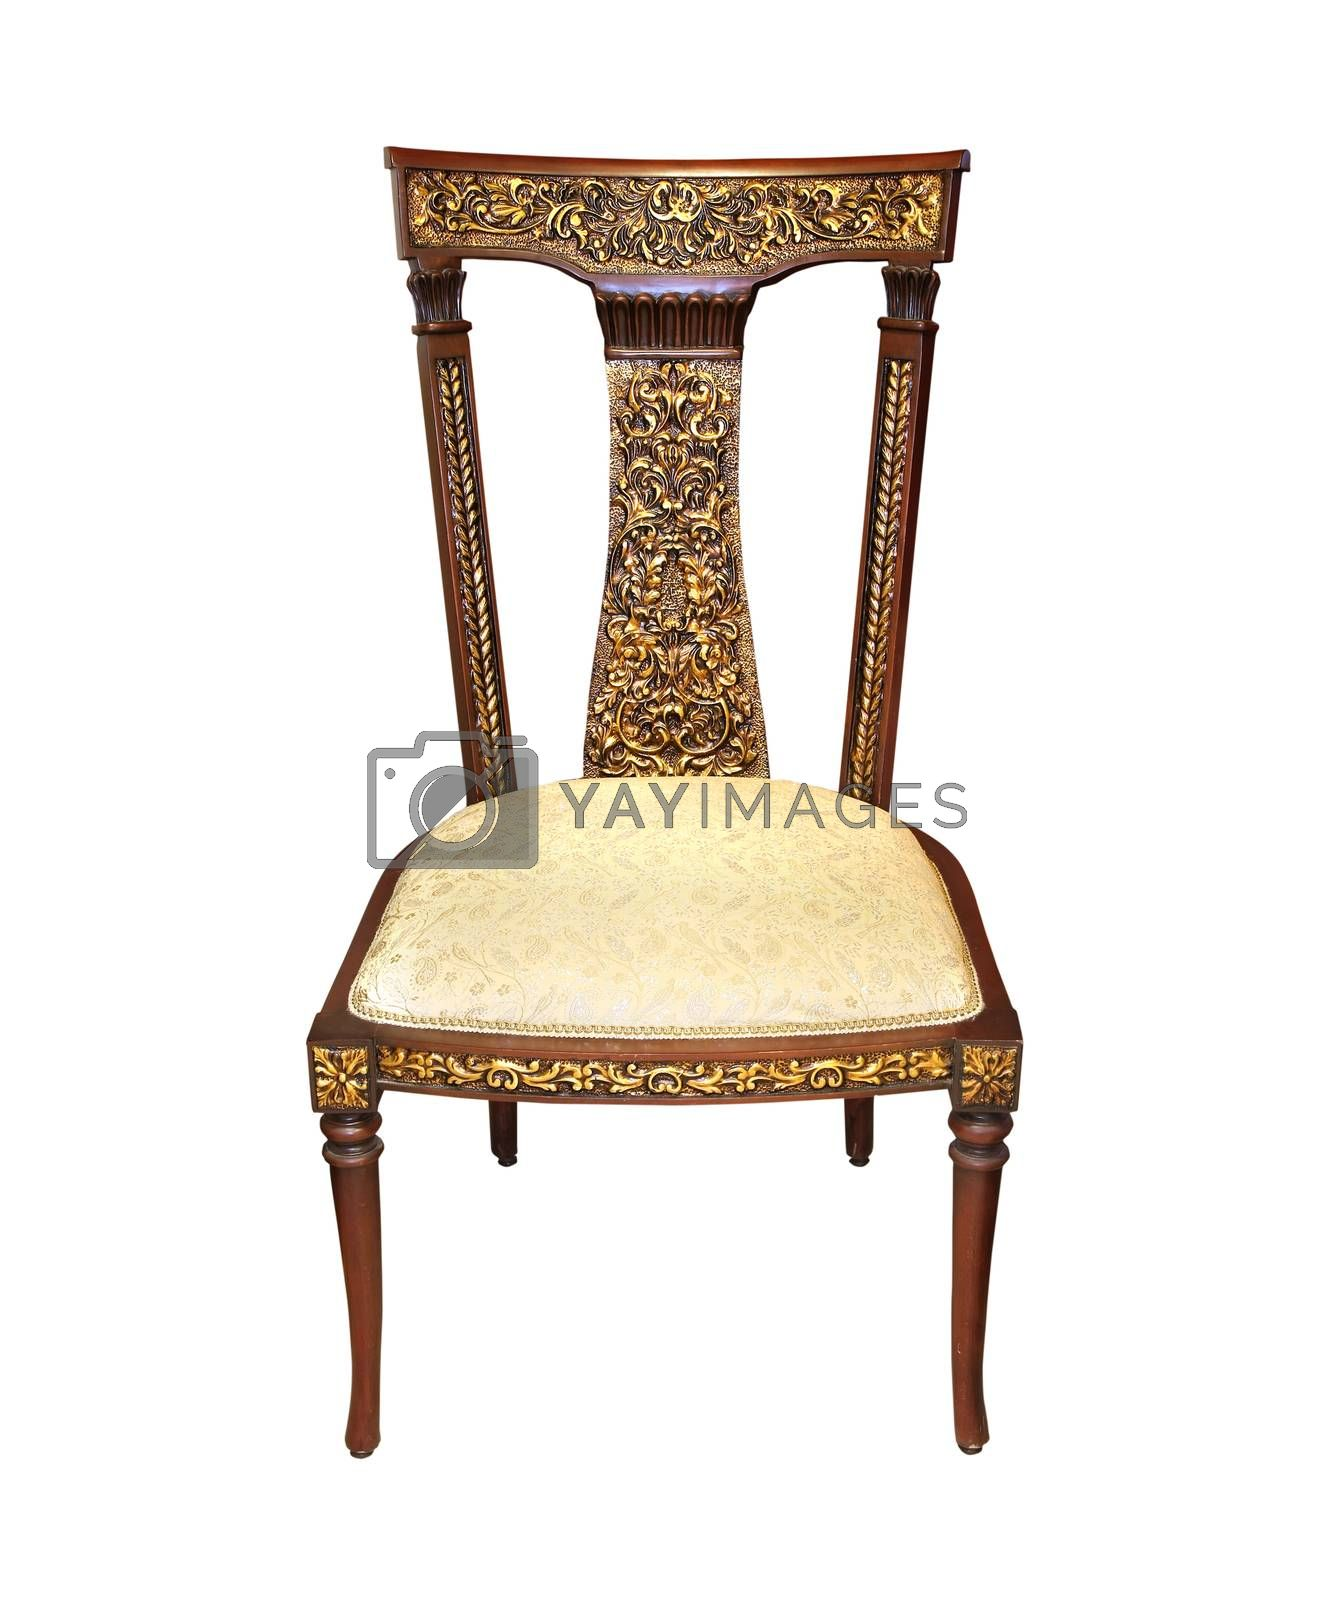 Royalty free image of Vintage chair by Baloncici